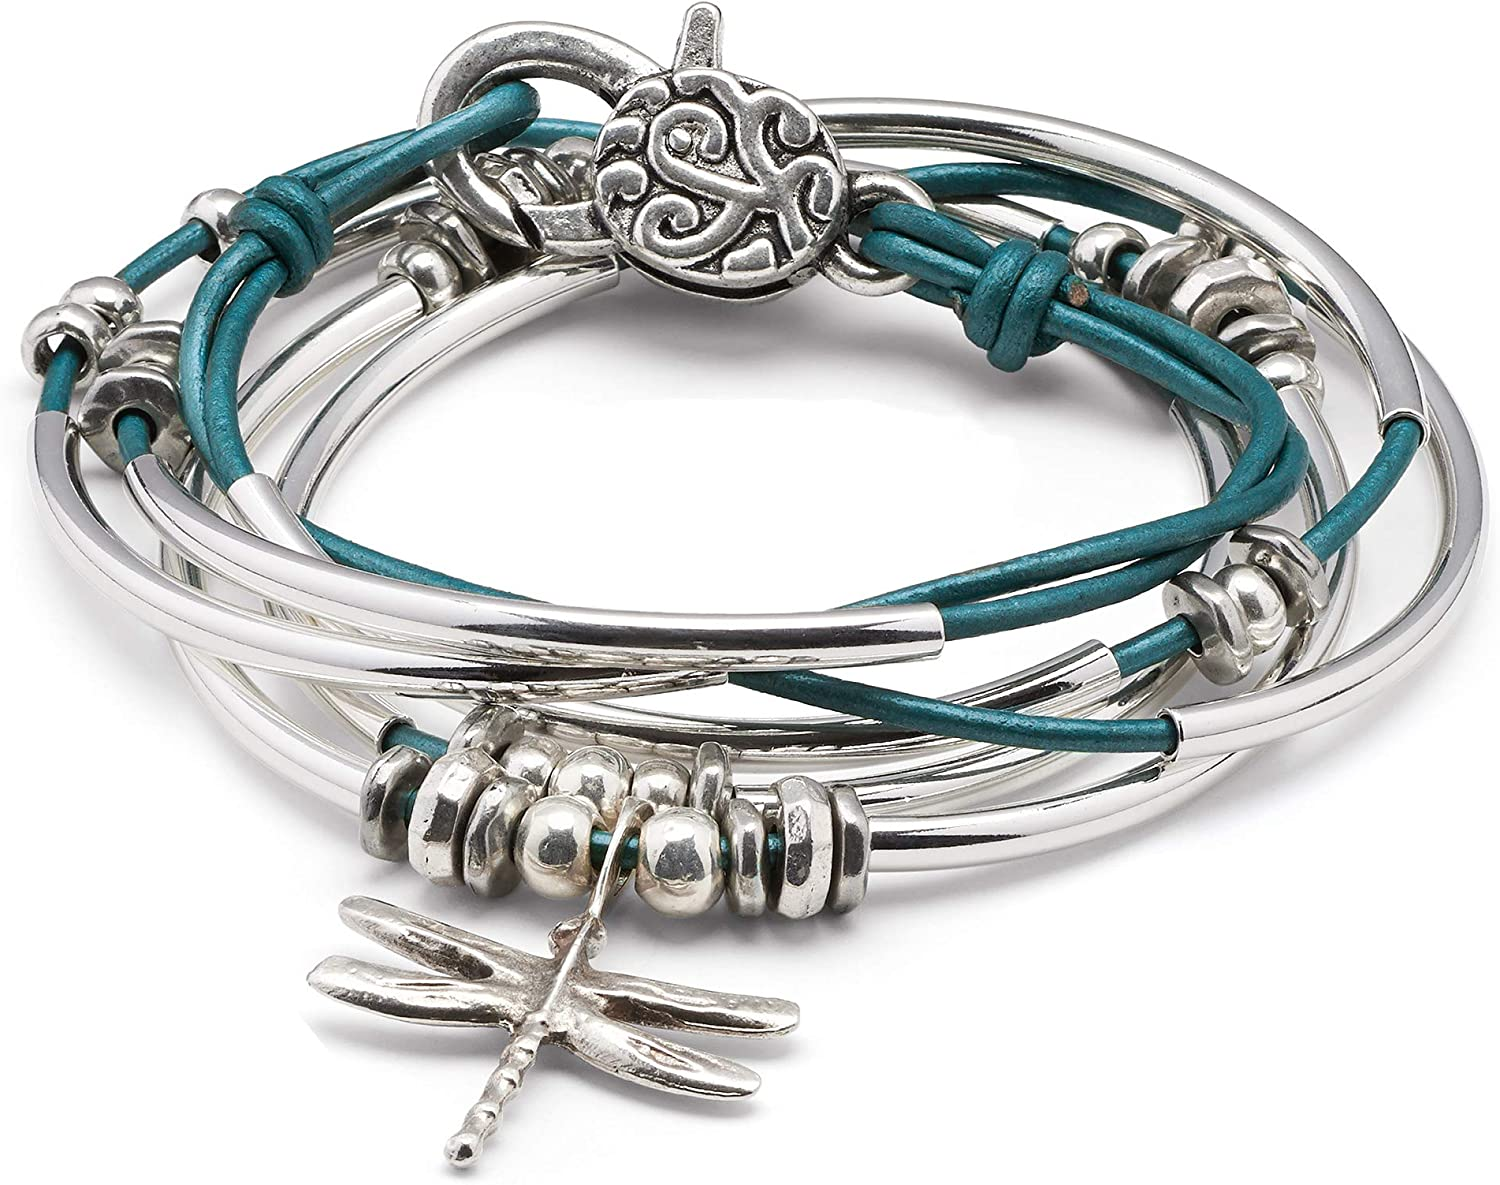 Lizzy James Dragonfly Charm Metallic Teal Leather Wrap Bracelet Necklace